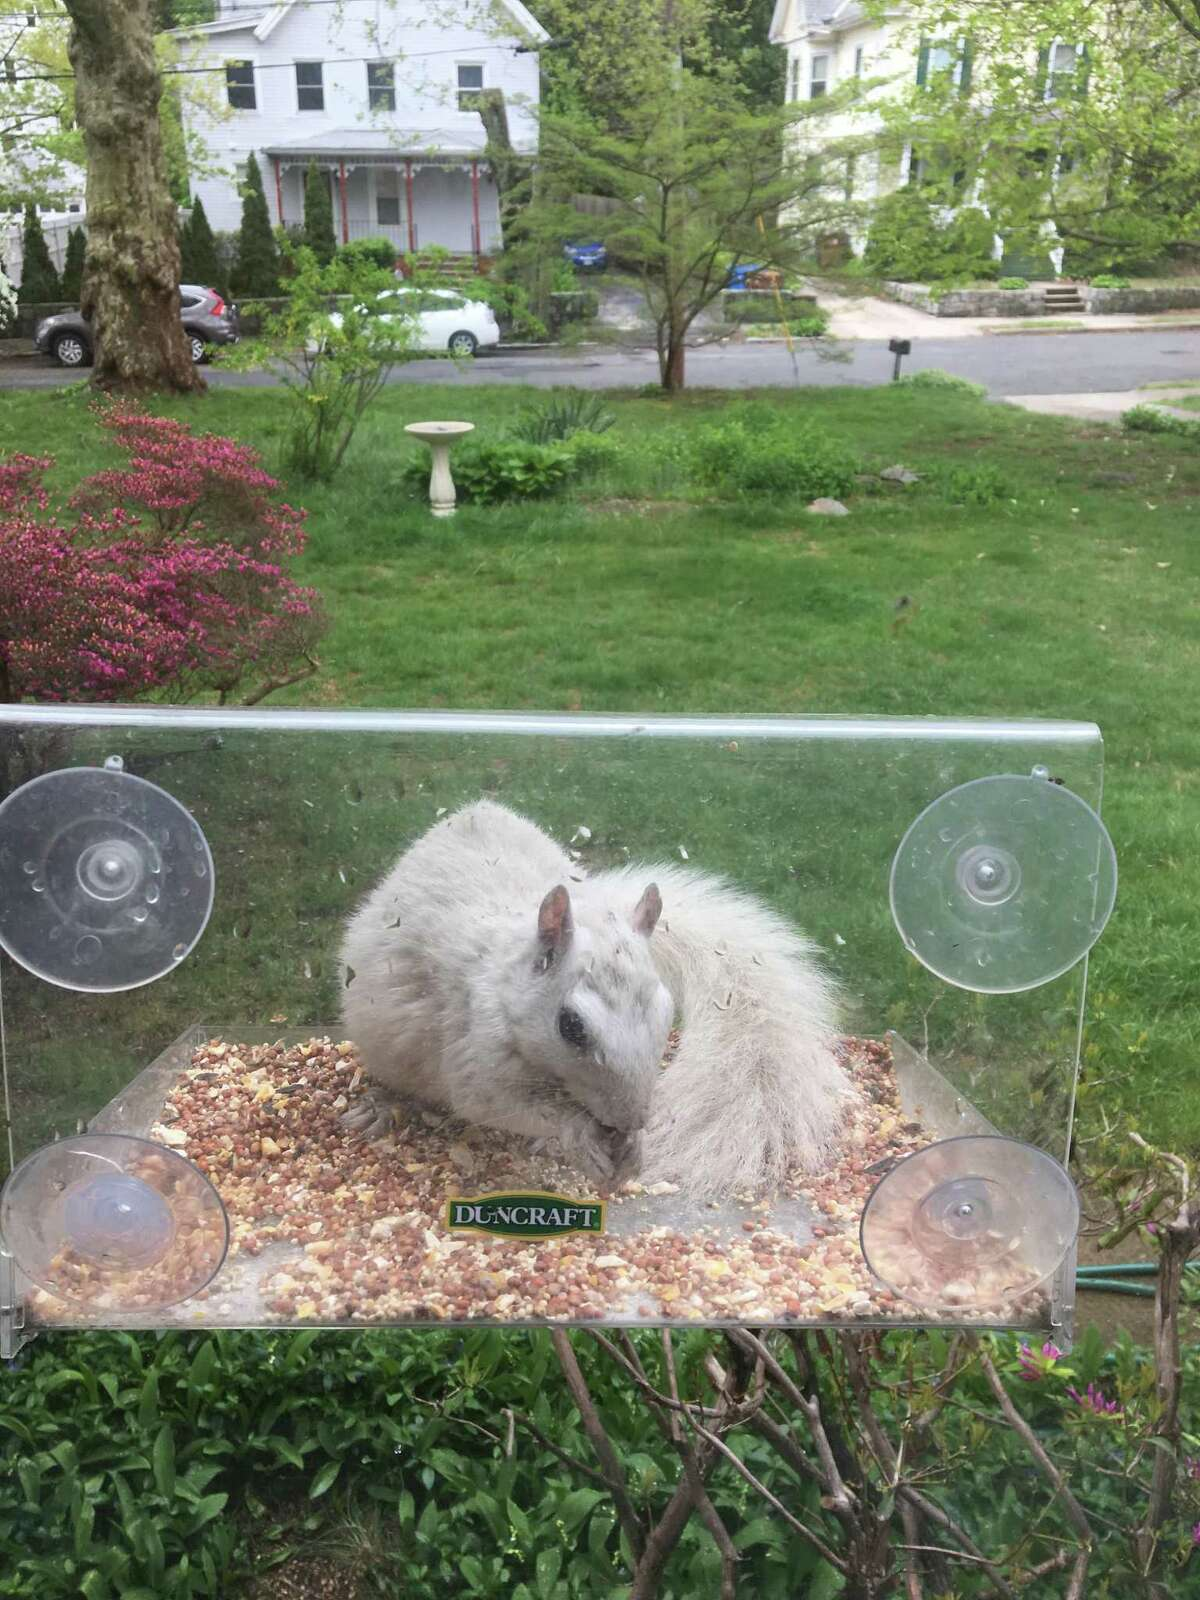 Though rare, there are other animals identified as leucistic, which is a genetic mutation that results in reduced pigmentation in all or part of an animal's fur, feathers, or scales. This white squirrel is in downtown Shelton.